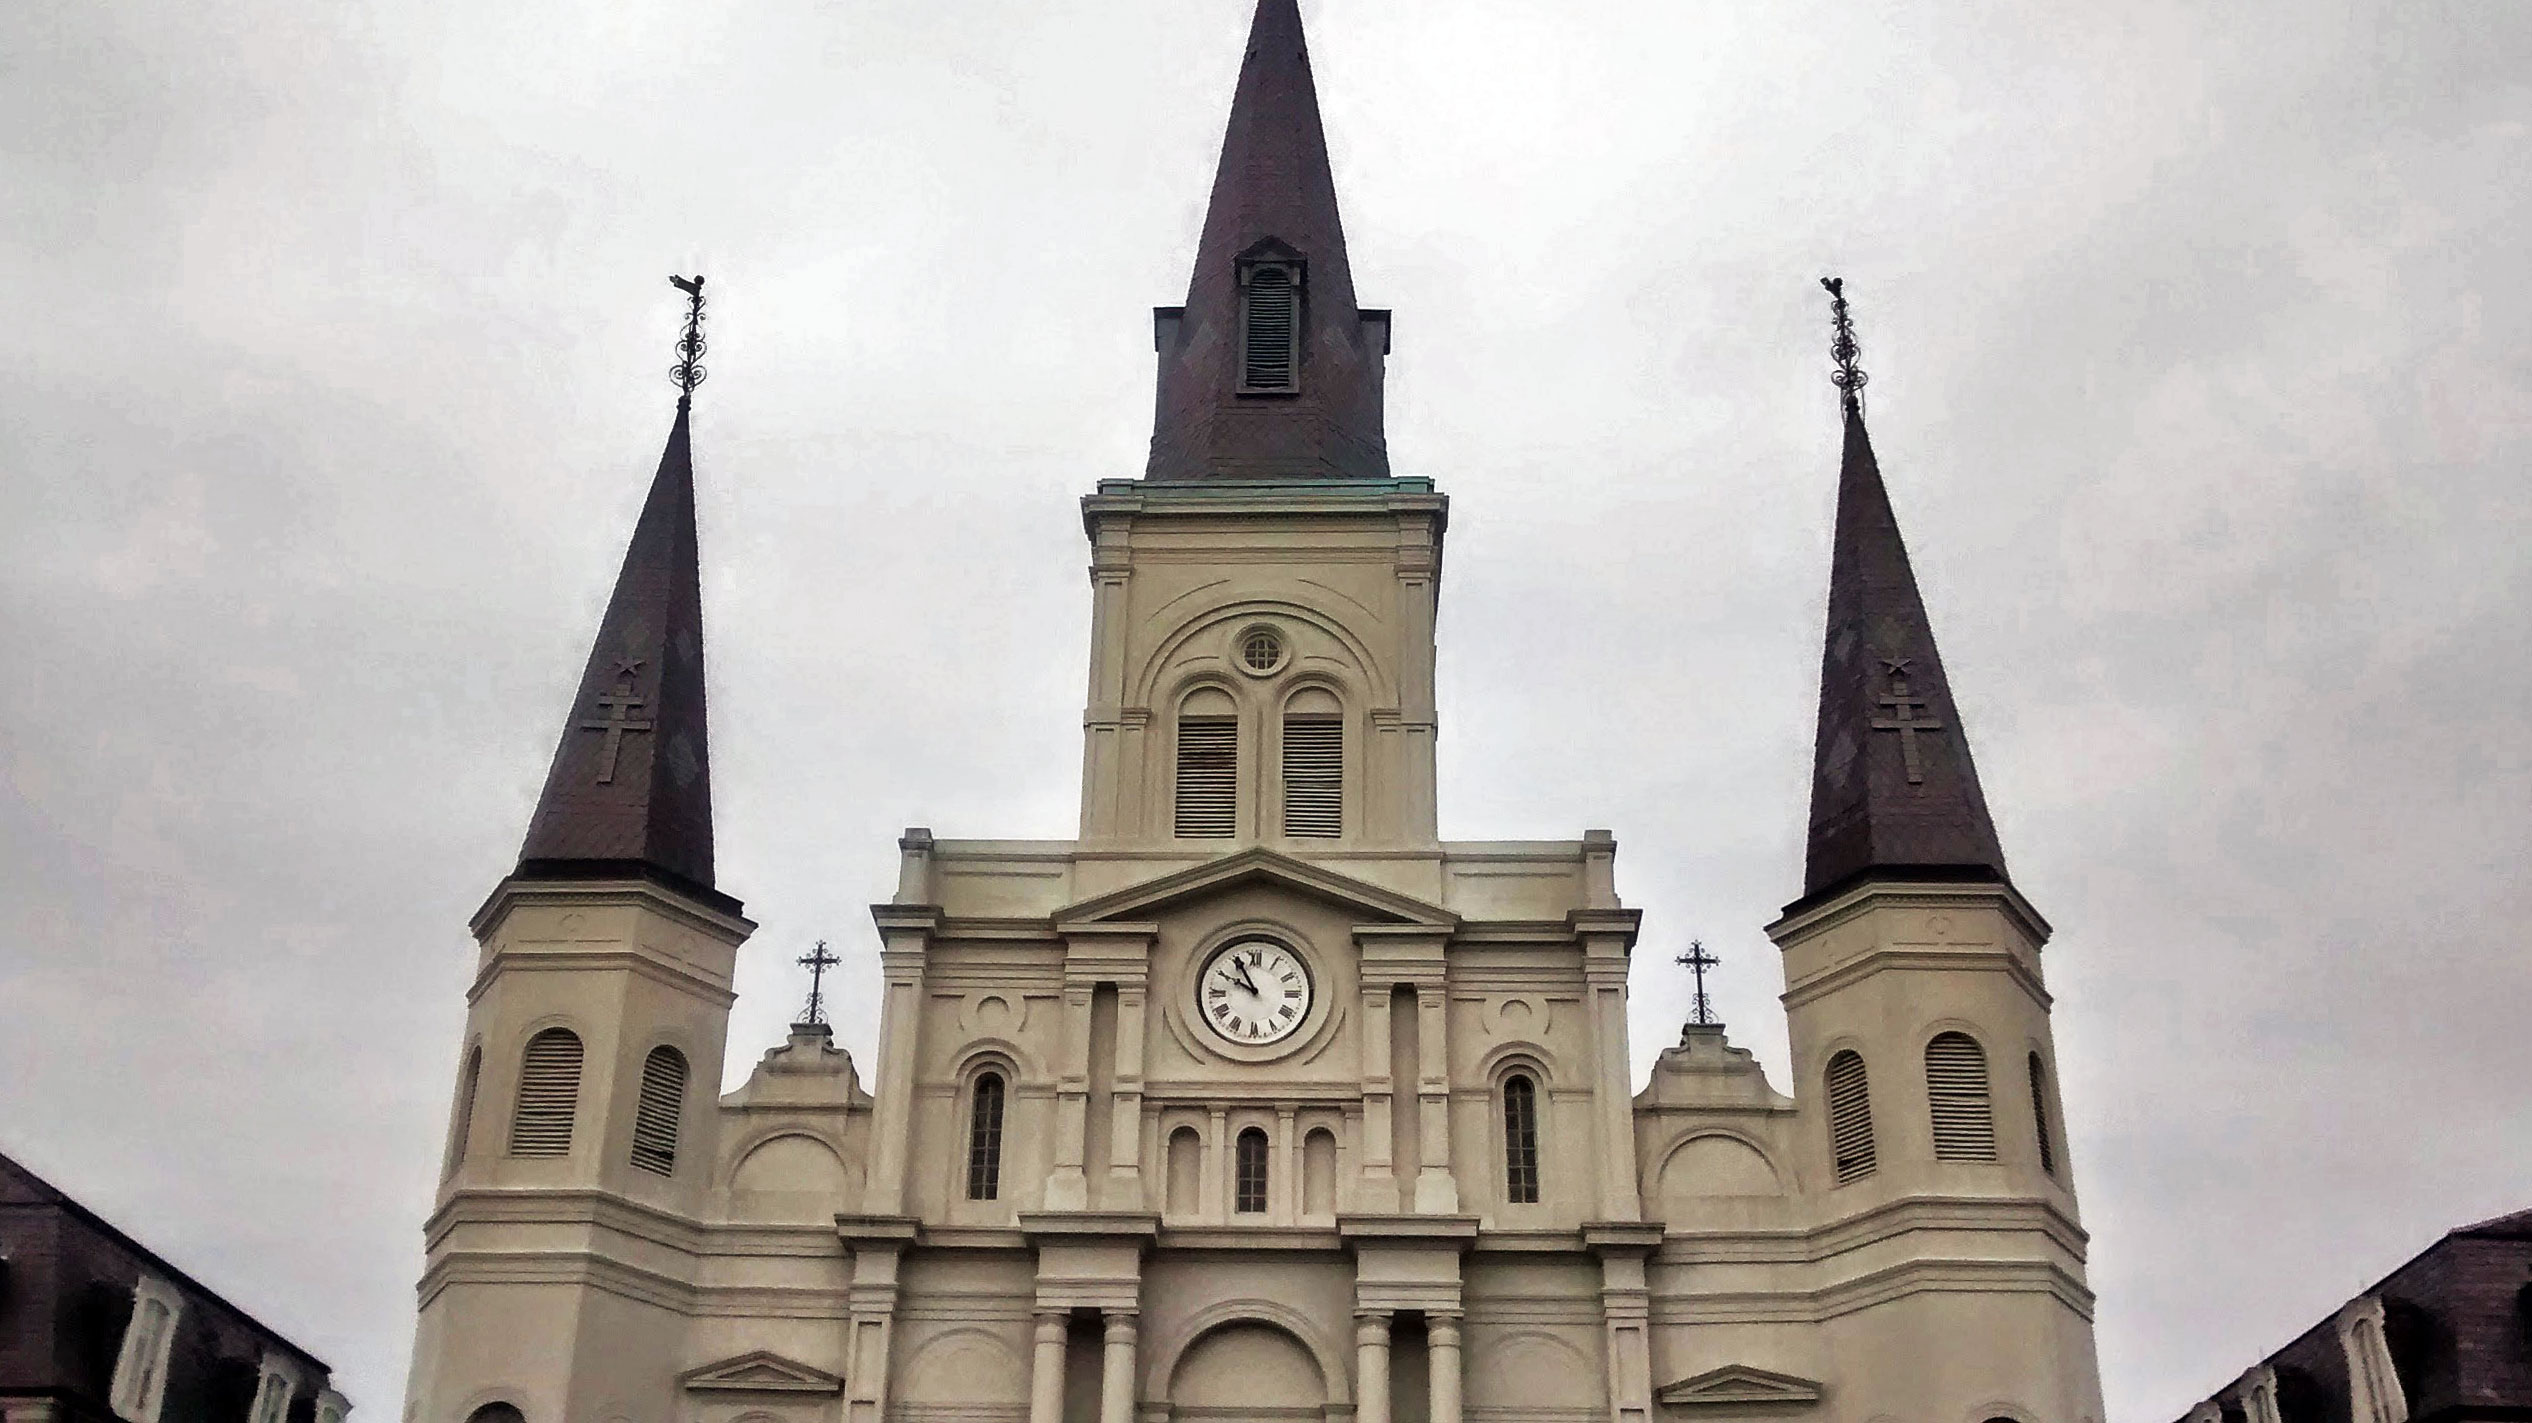 StLouisCathedral 1024x575 - Visiting New Orleans In January: Top 8 Things To Do